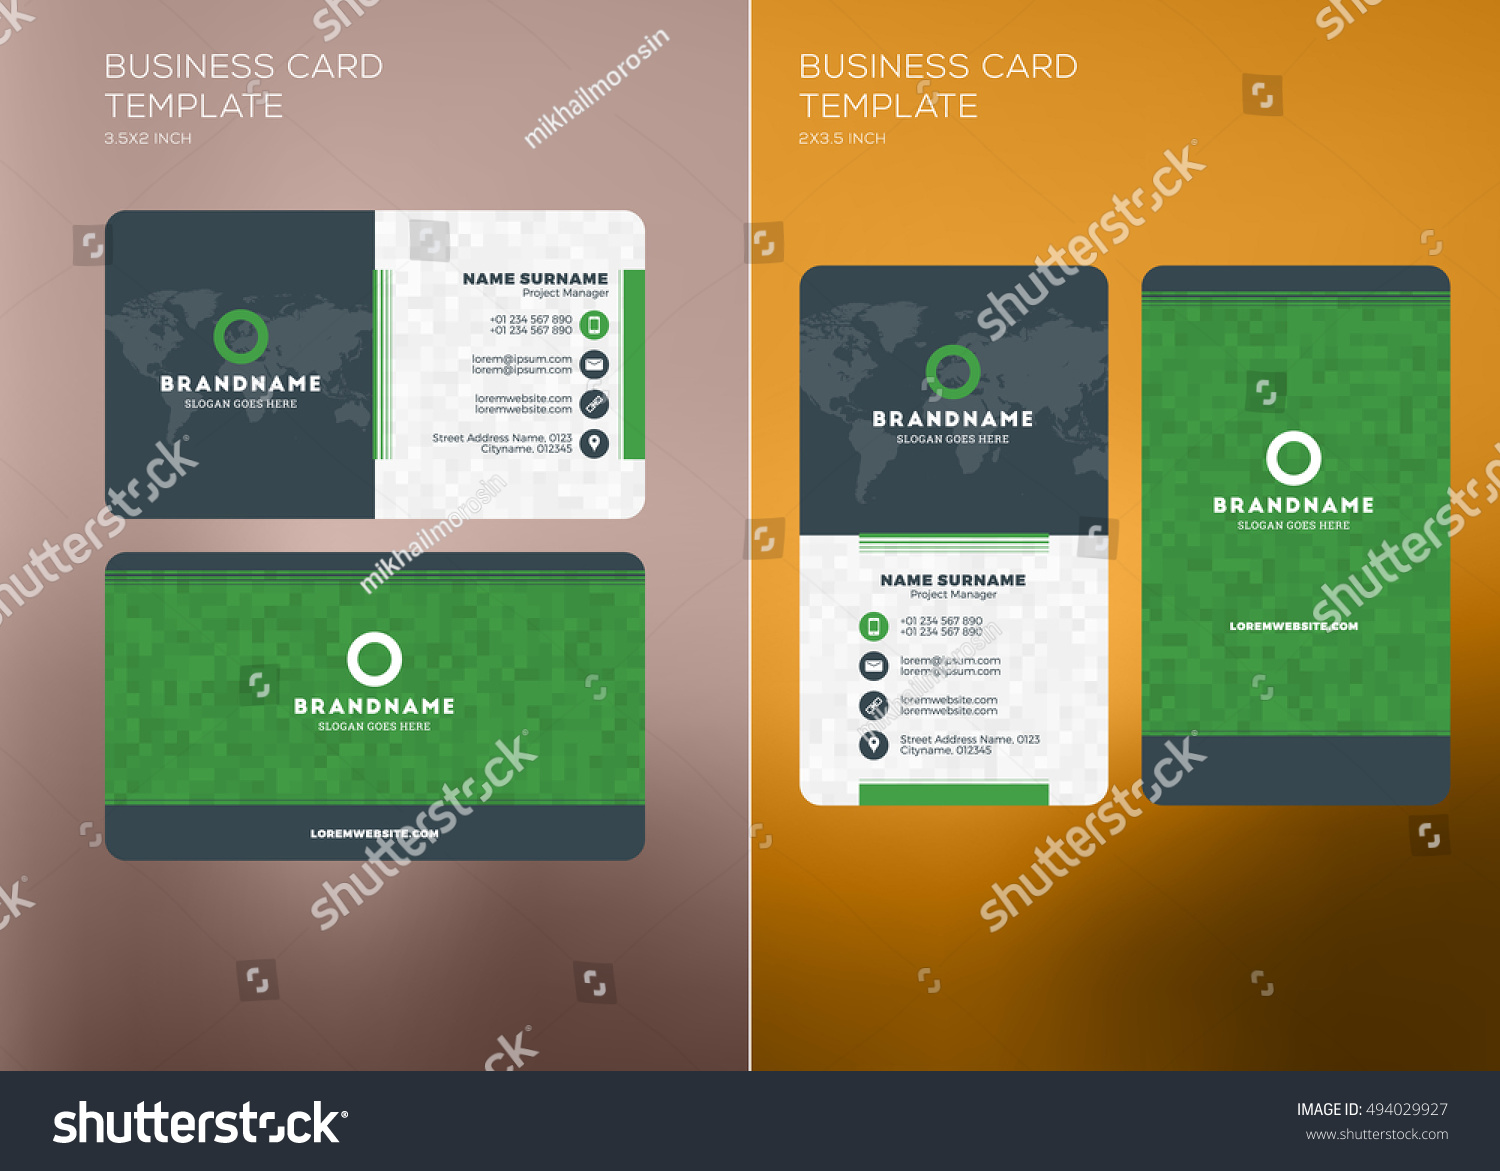 Corporate Business Card Print Template Personal Stock Vector ...